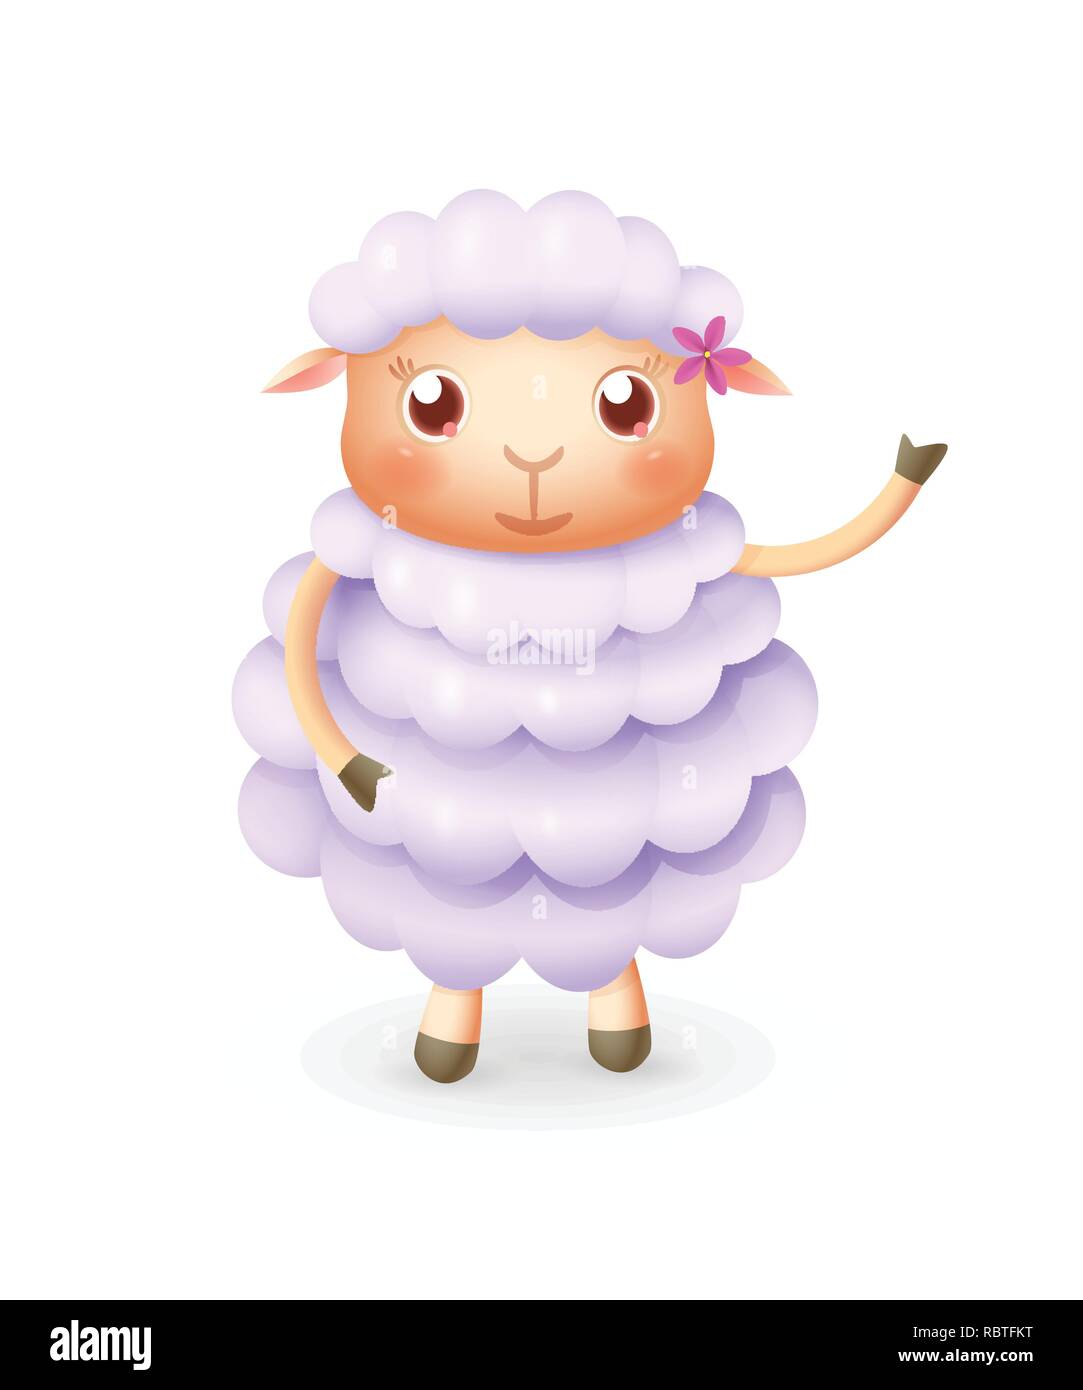 Cute happy sheep smile and wave - vector illustration - Stock Image